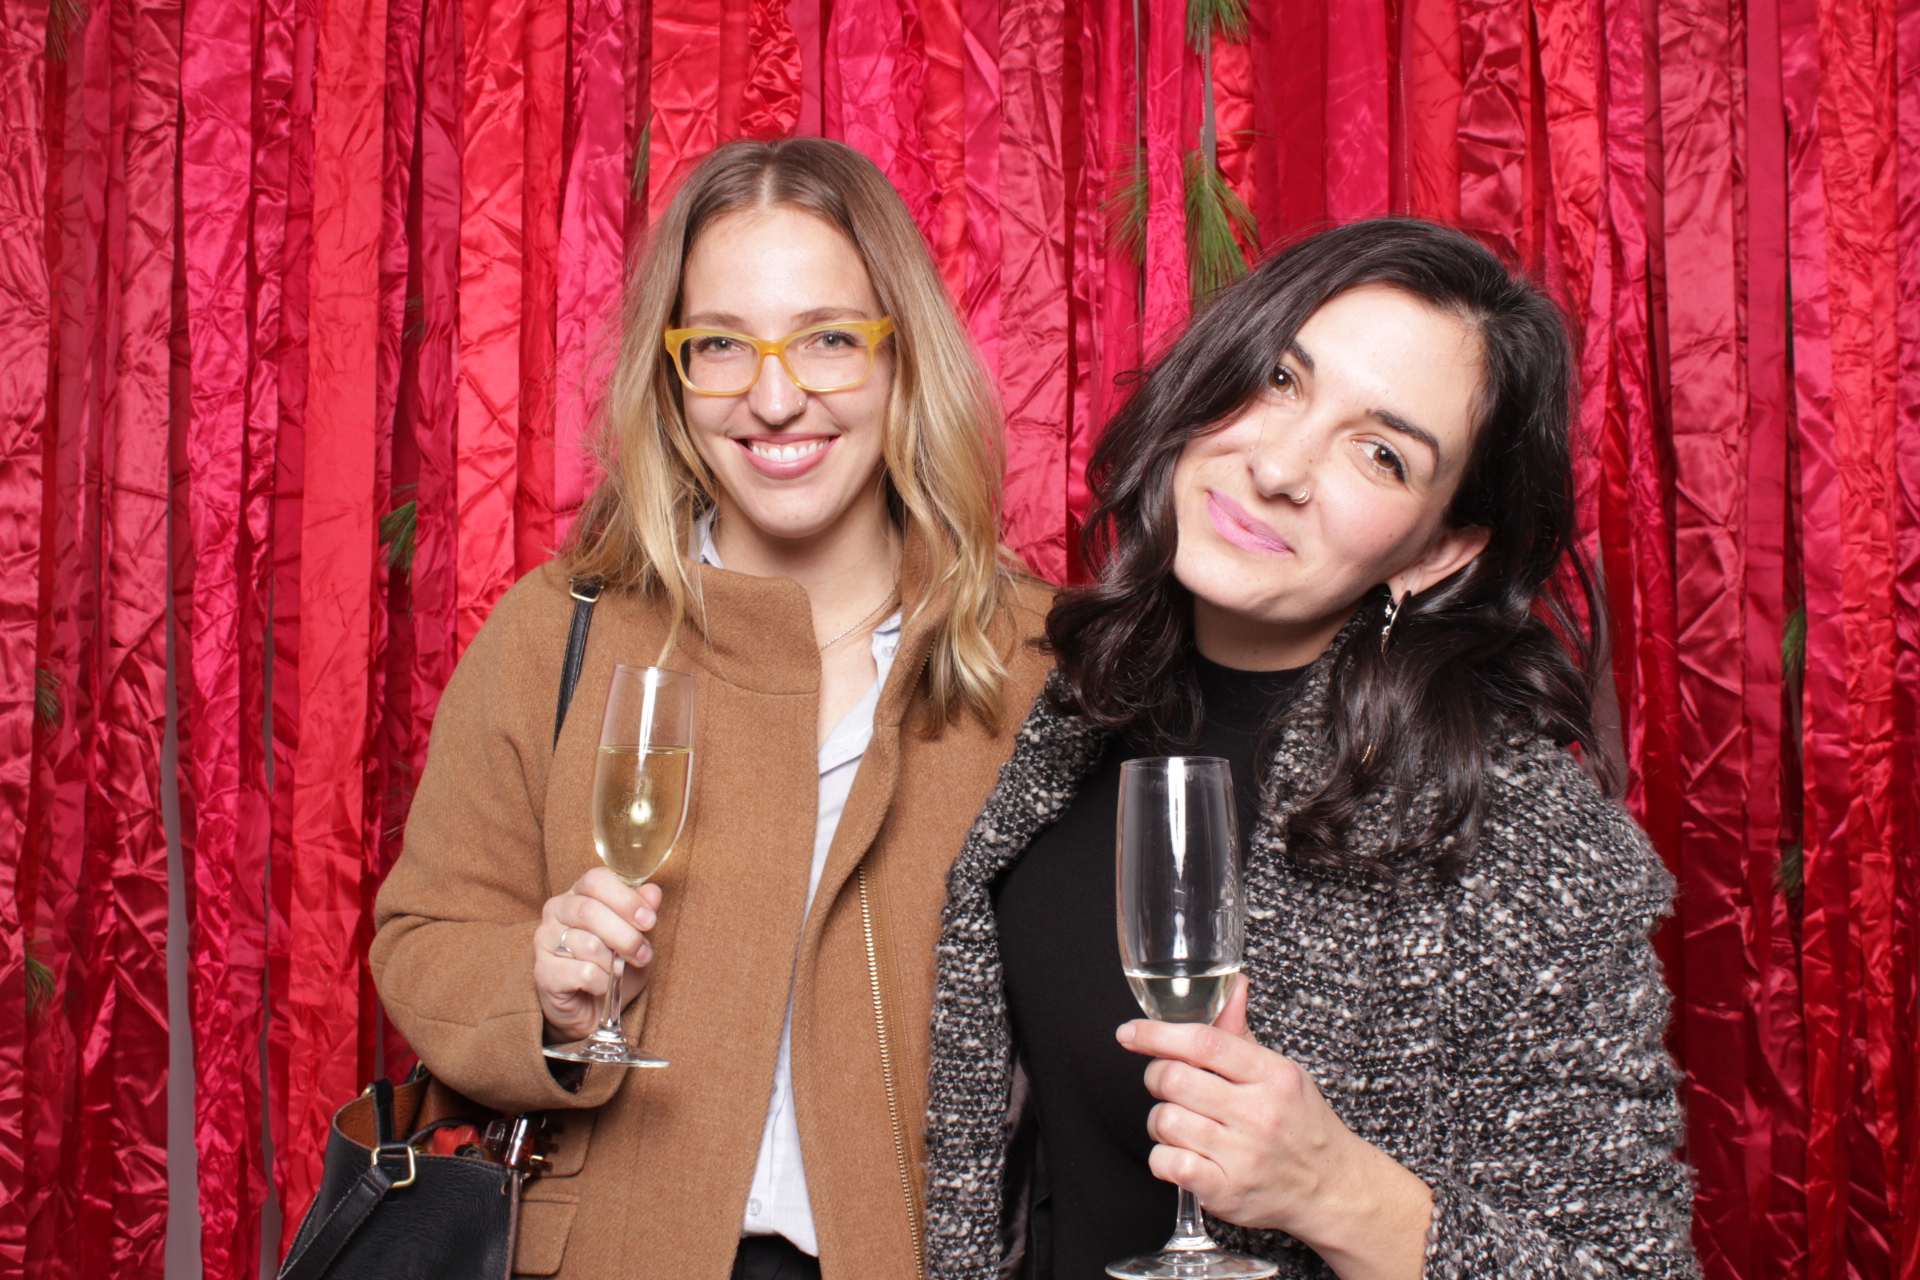 Hutton_House_Minneapolis_Photo_booth_rentals (13).jpg